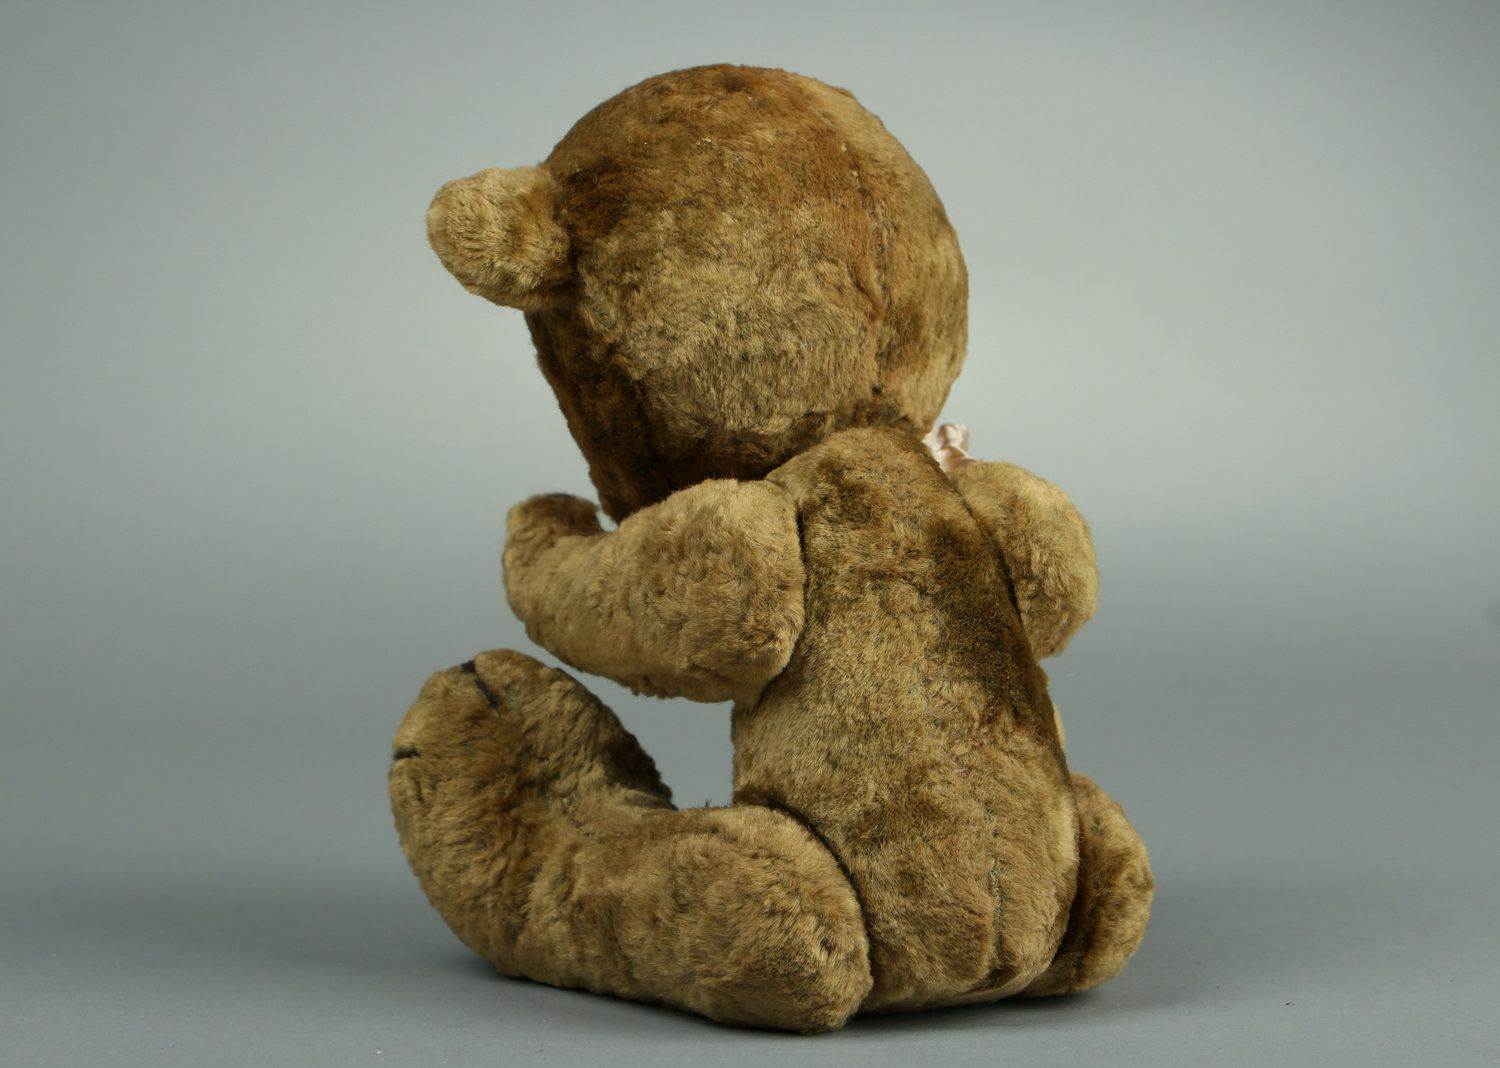 teddy bears Vintage plush Teddy bear - MADEheart.com